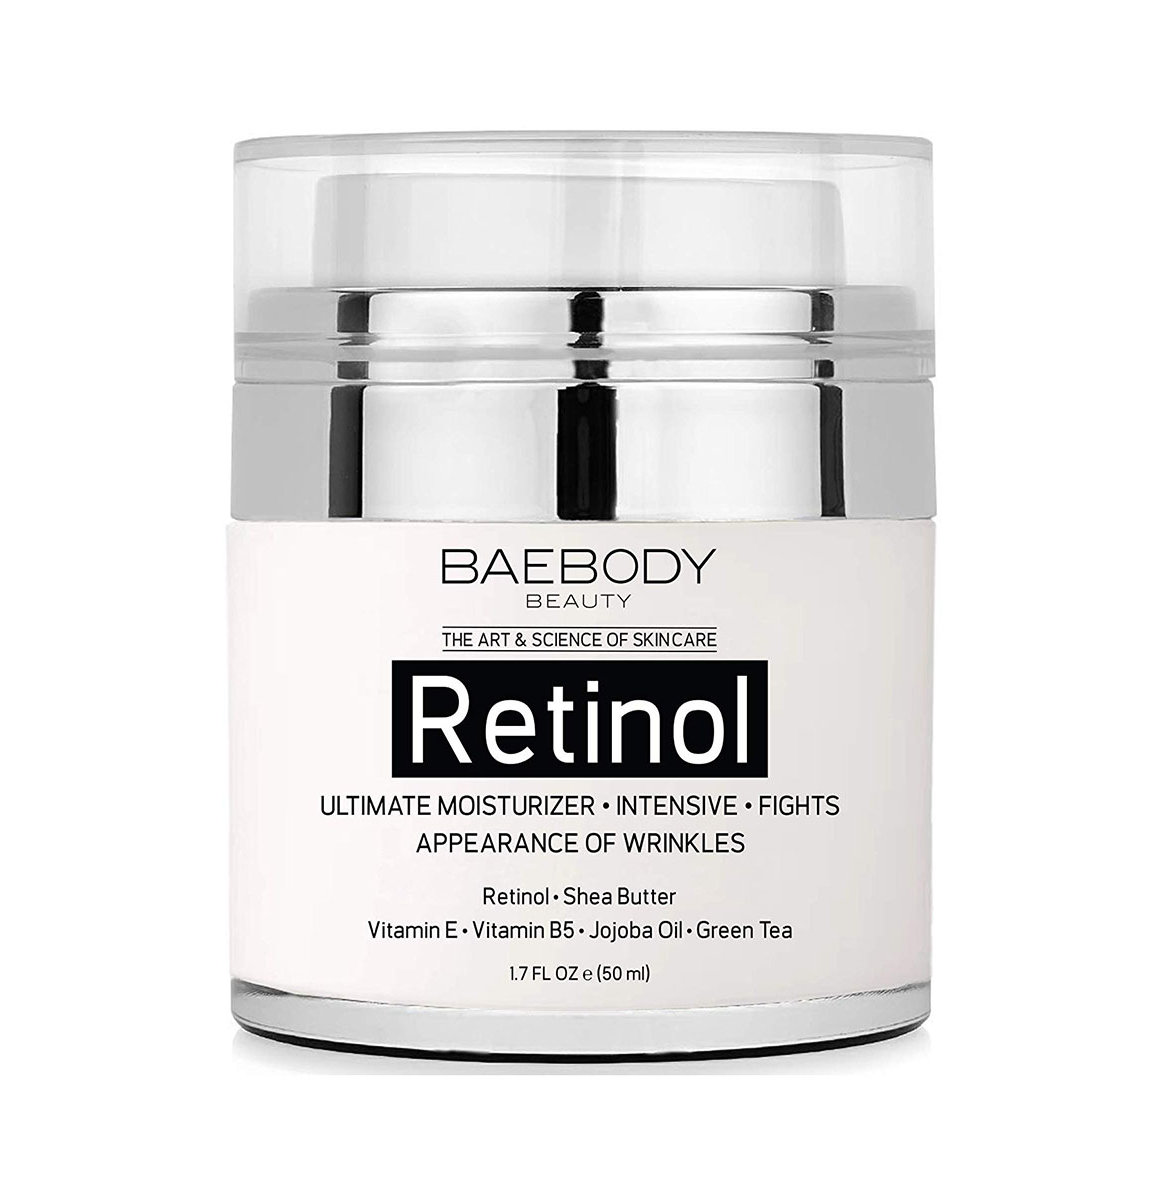 This Anti-Aging Eye Cream's Popularity Rose Almost 300% in One Month